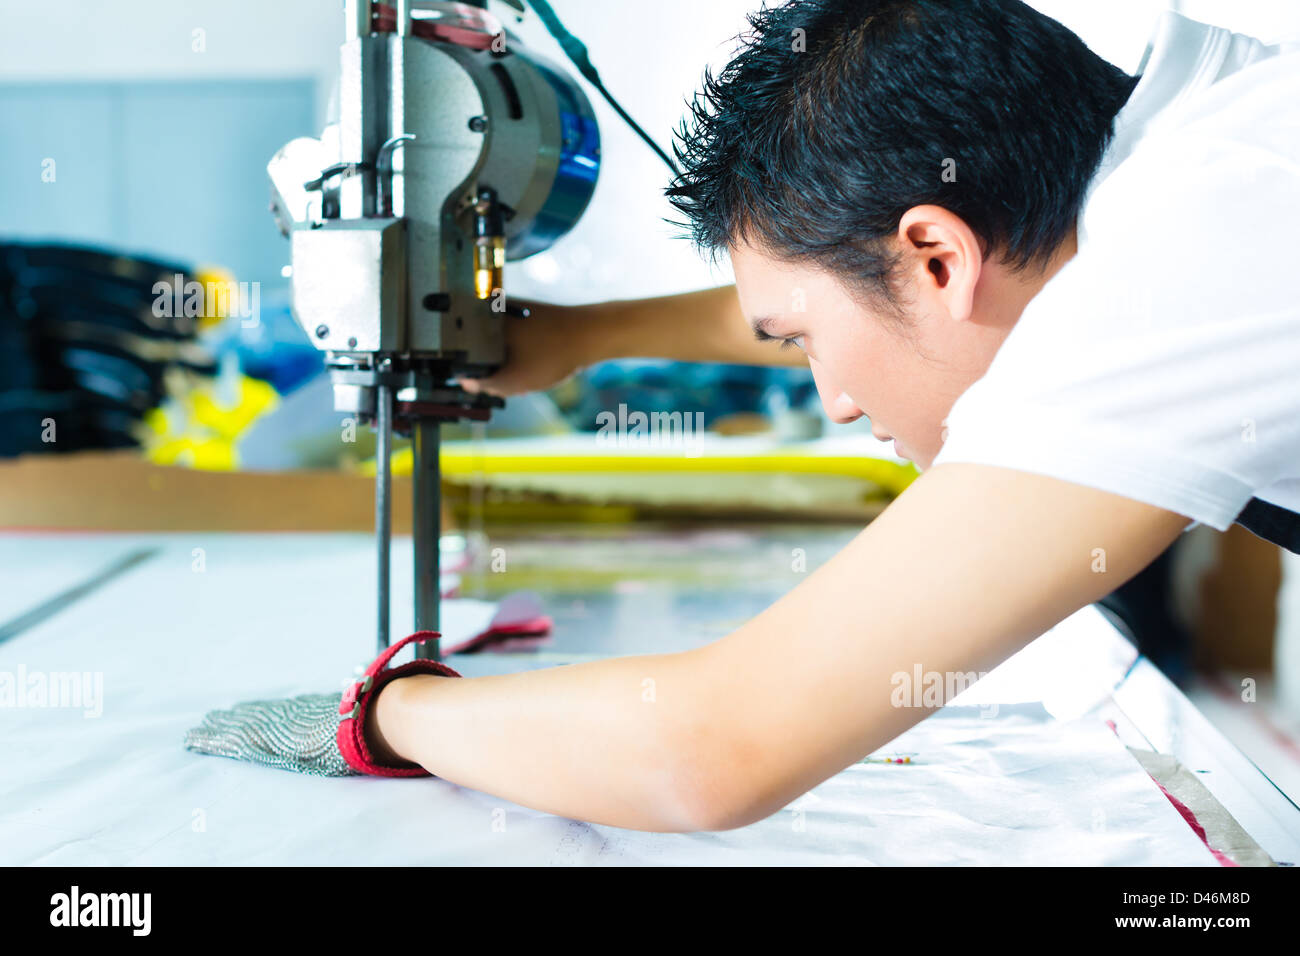 worker using a cutter - a large machine for cutting fabrics- in a Chinese textile factory, he wears a chain glove - Stock Image